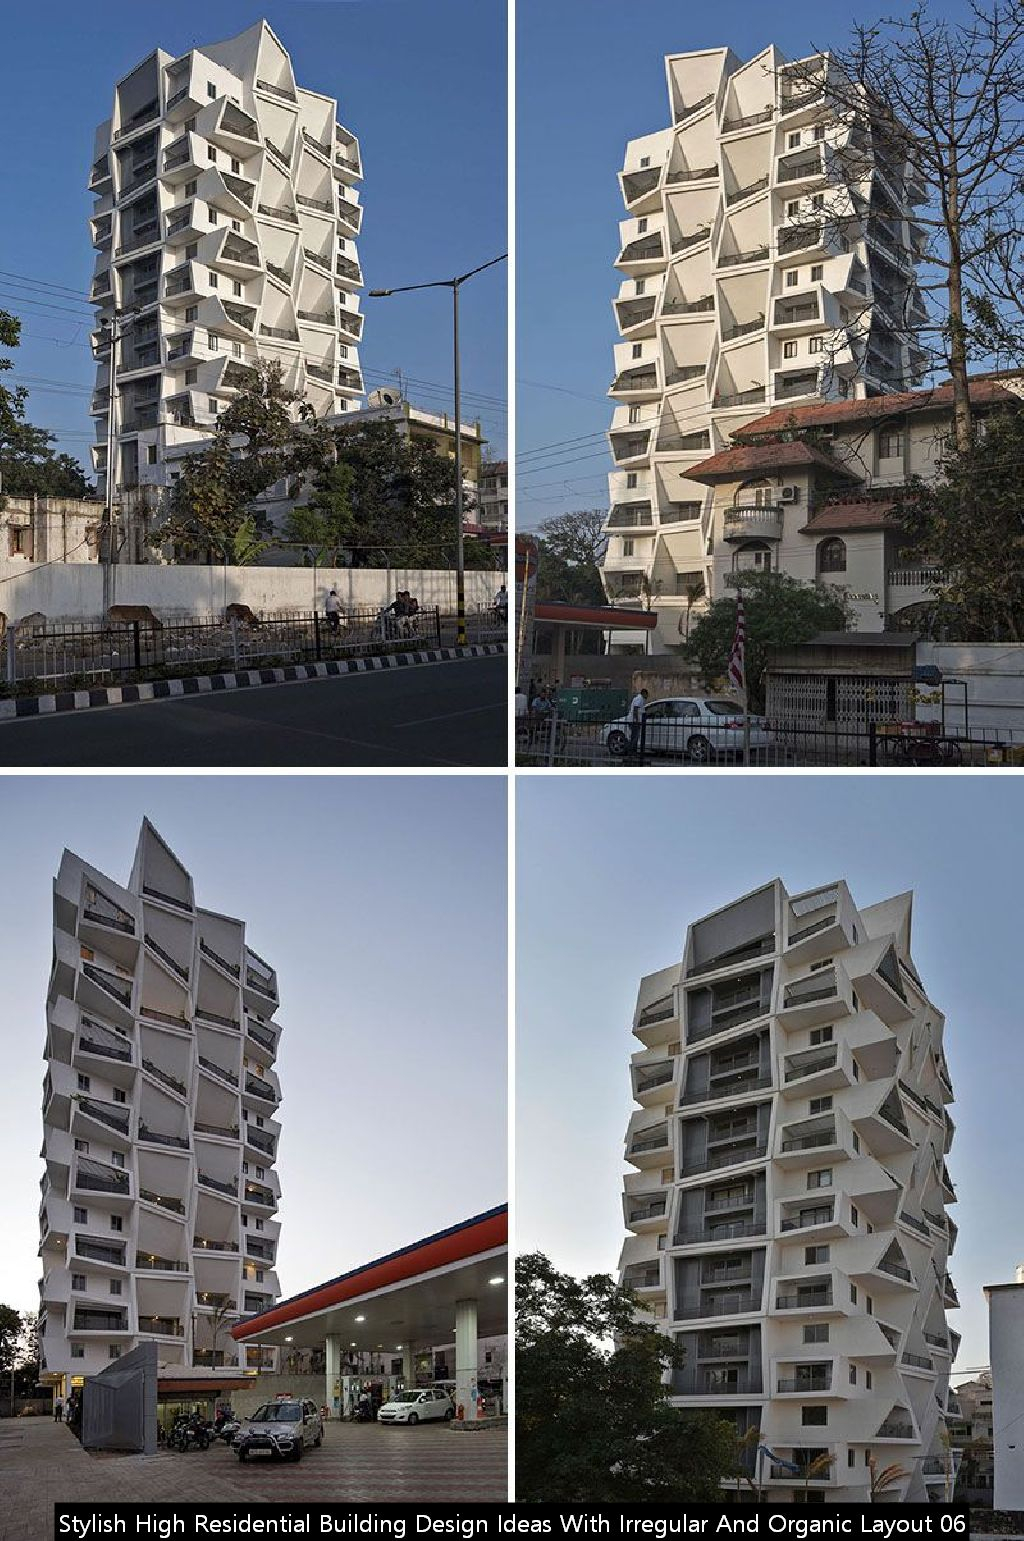 Stylish High Residential Building Design Ideas With Irregular And Organic Layout 06